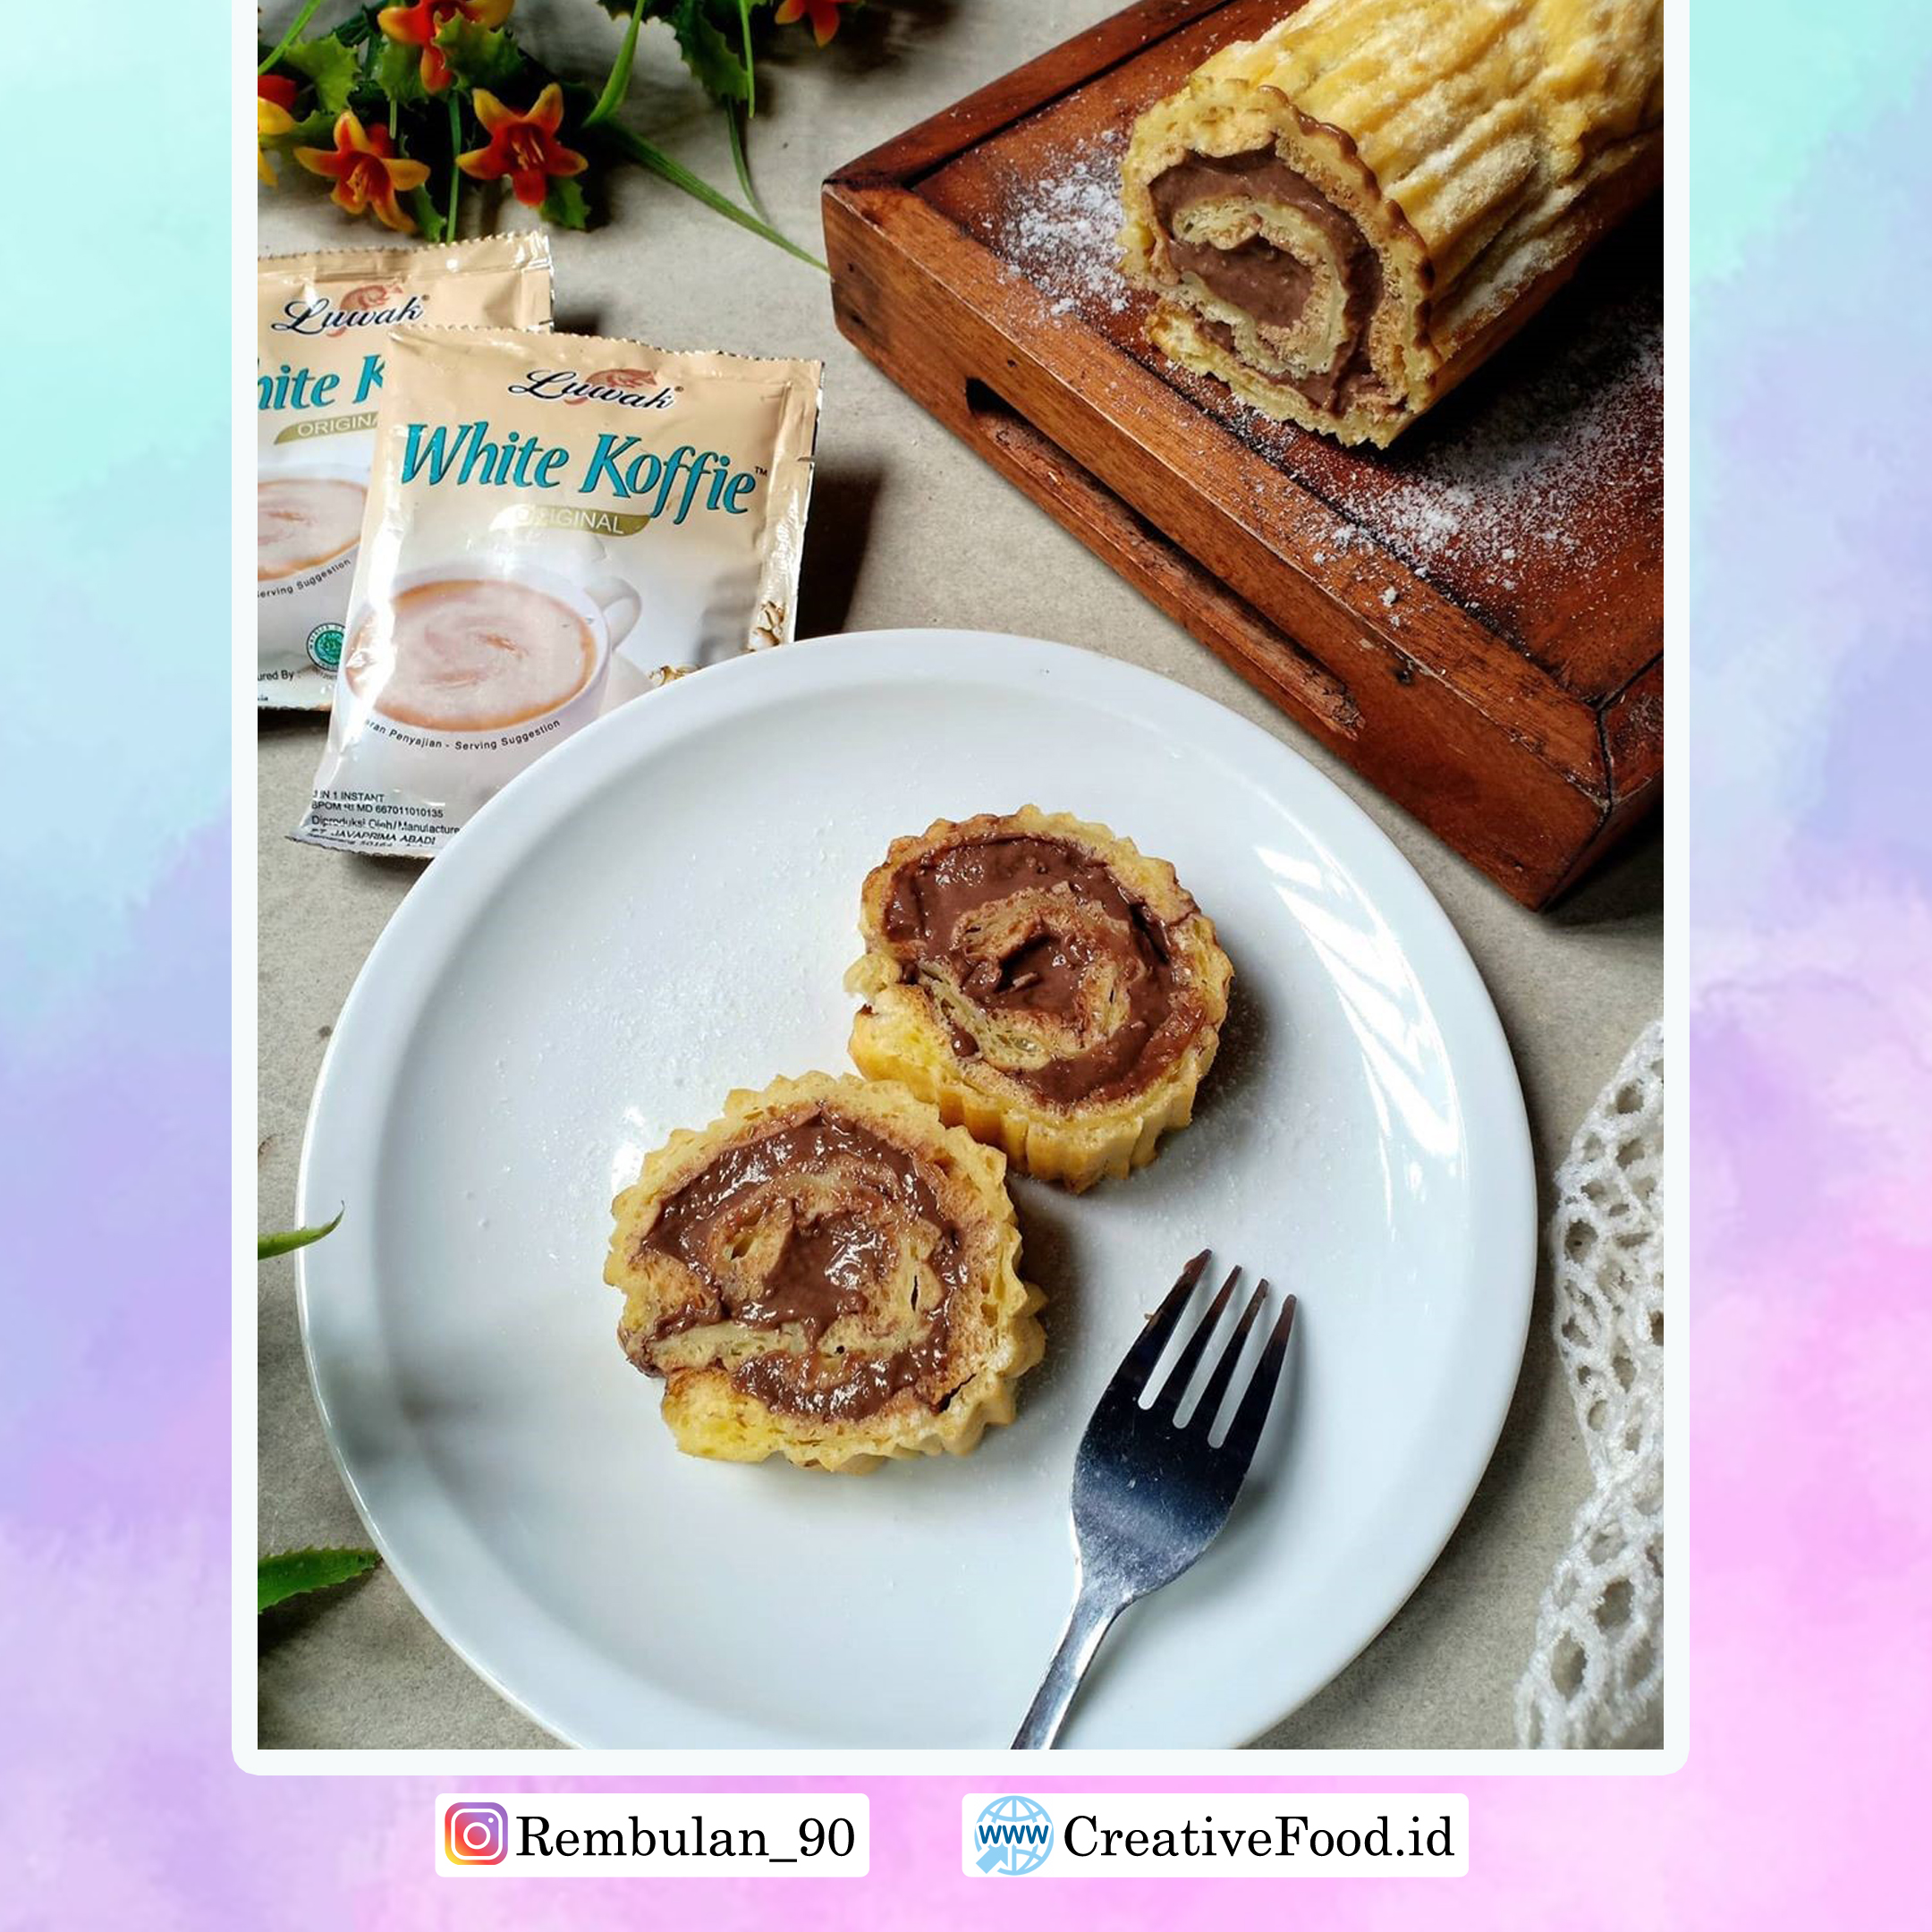 creative food rembulan_90 mbantul jogja 4 creative recipes creative cooking